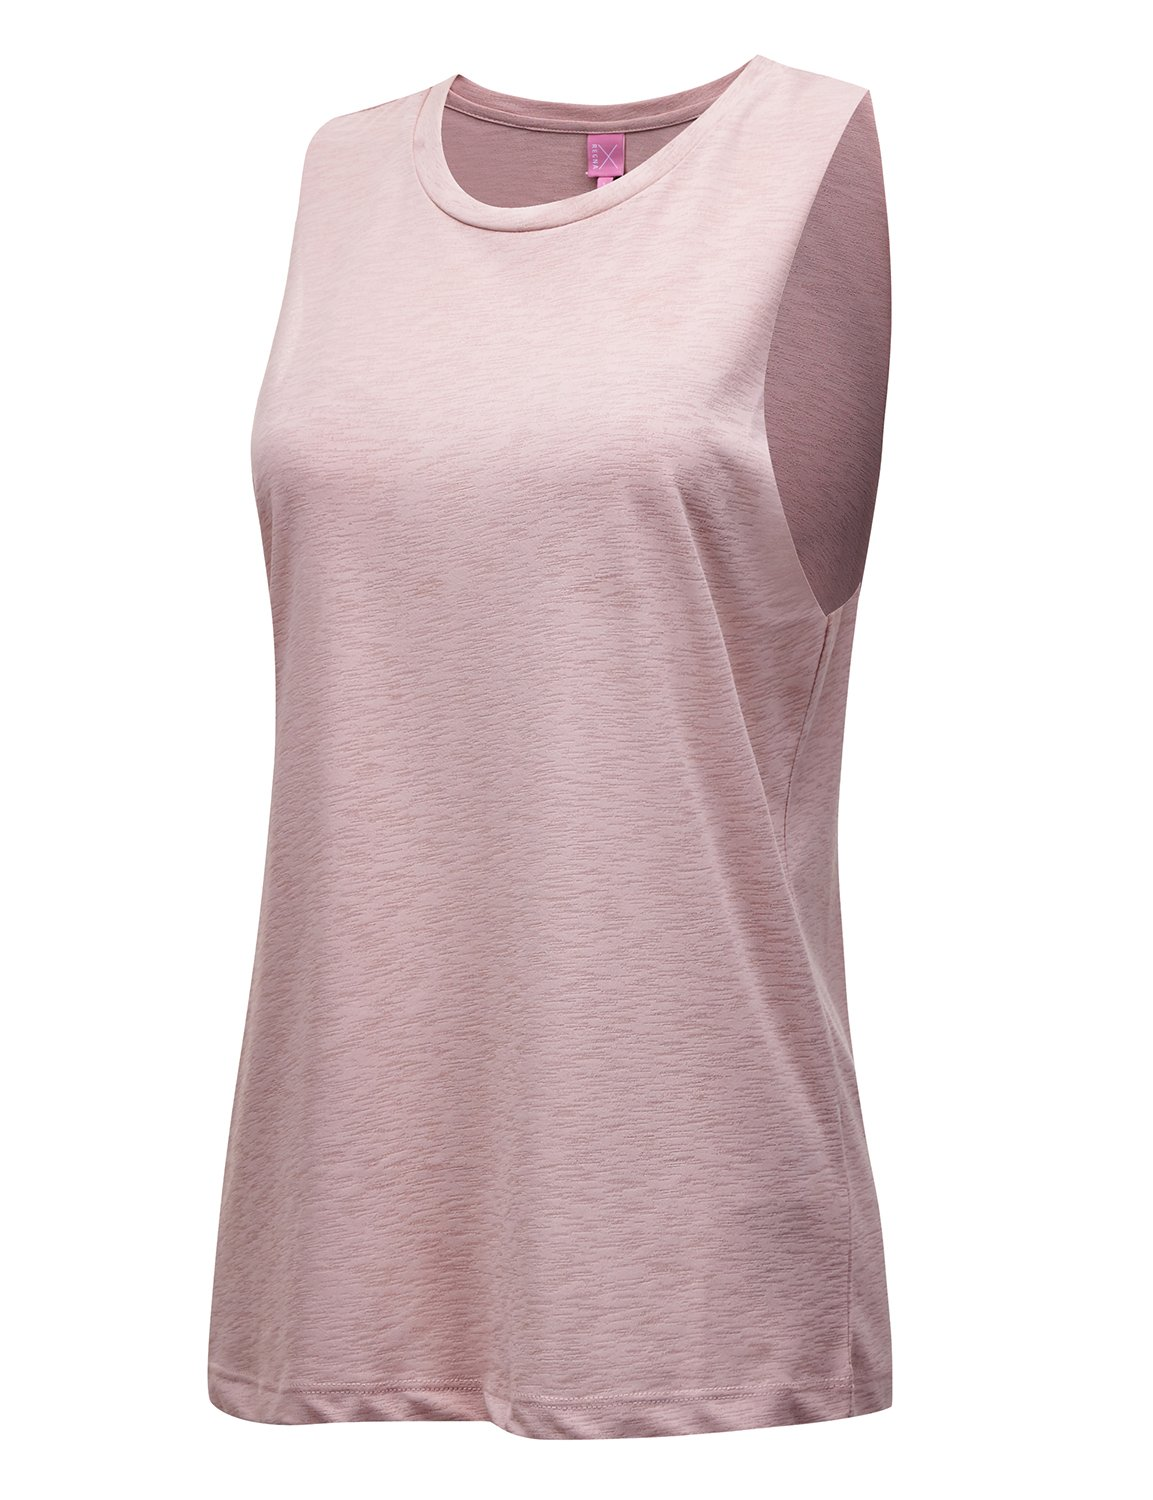 REGNA X NO BOTHER Women's Sleeveless Round neck Strappy Back Tank Top Camisole, Small, #17501_light Pink